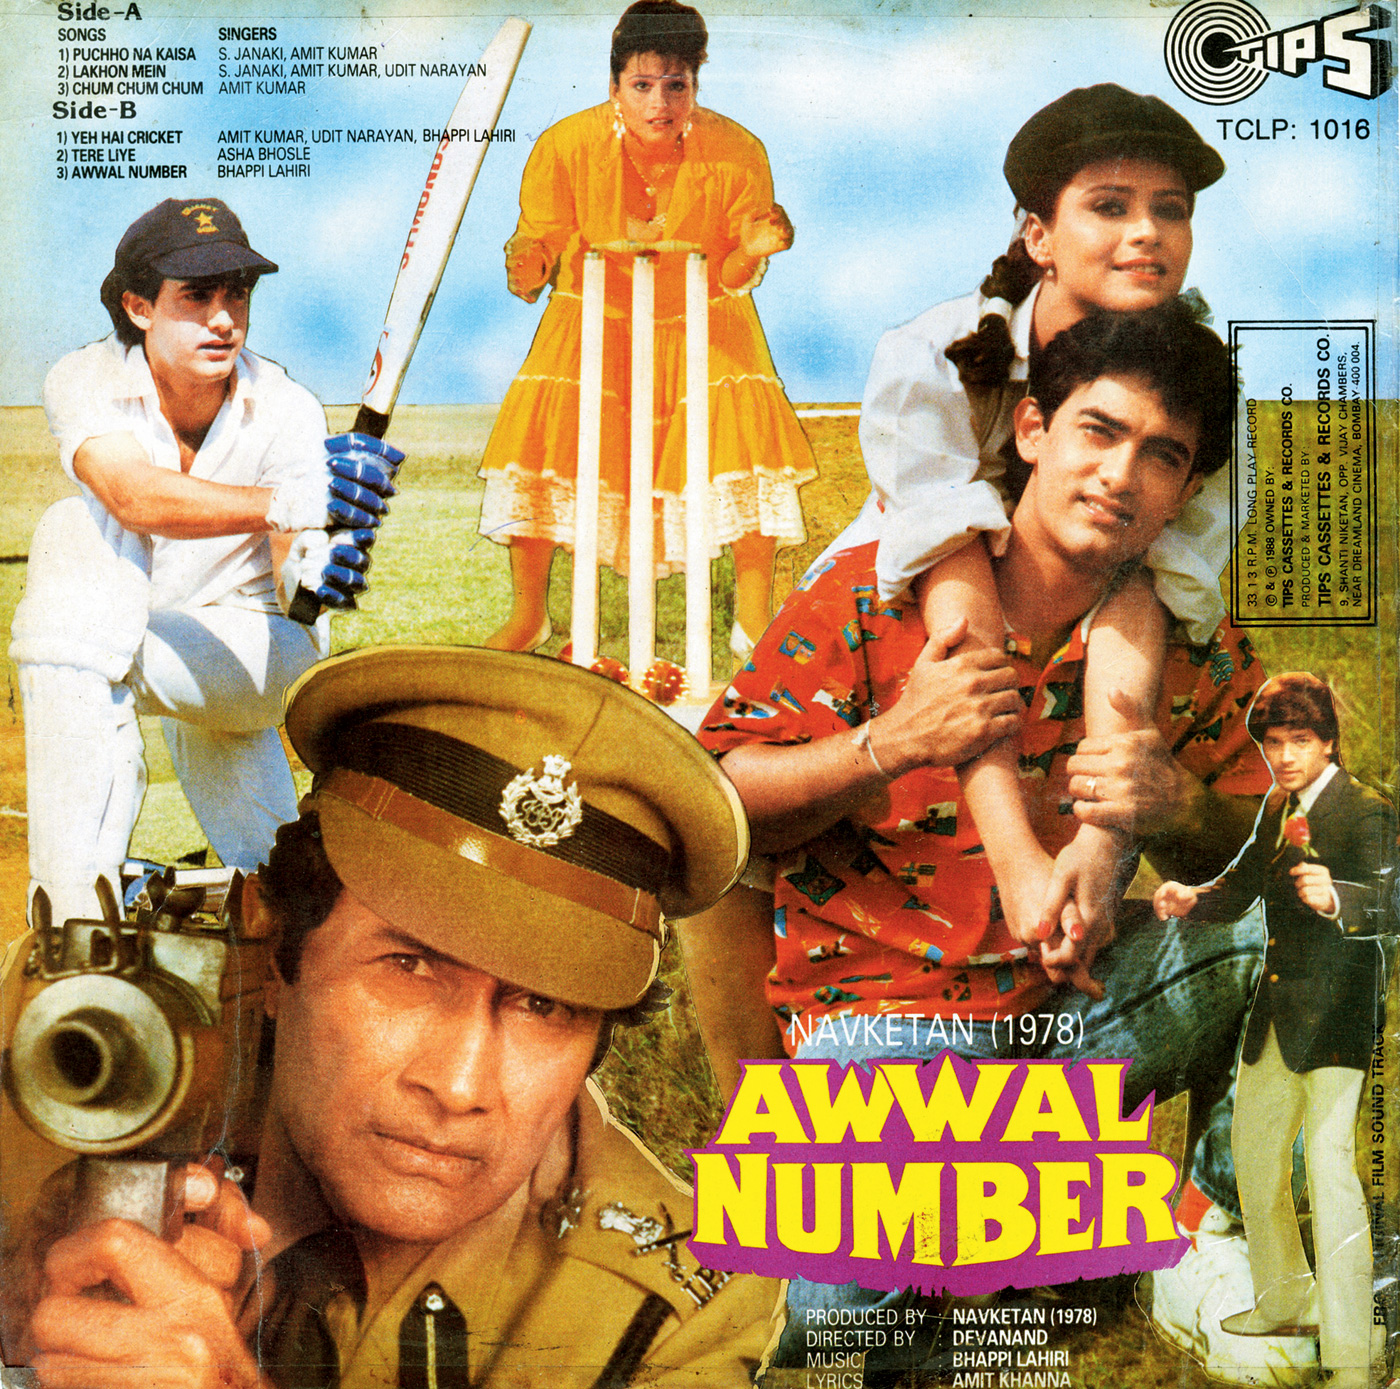 <i>Awwal Number</I> shows a unique way of dealing with selection snubs (involving bombs thrown from a chopper)